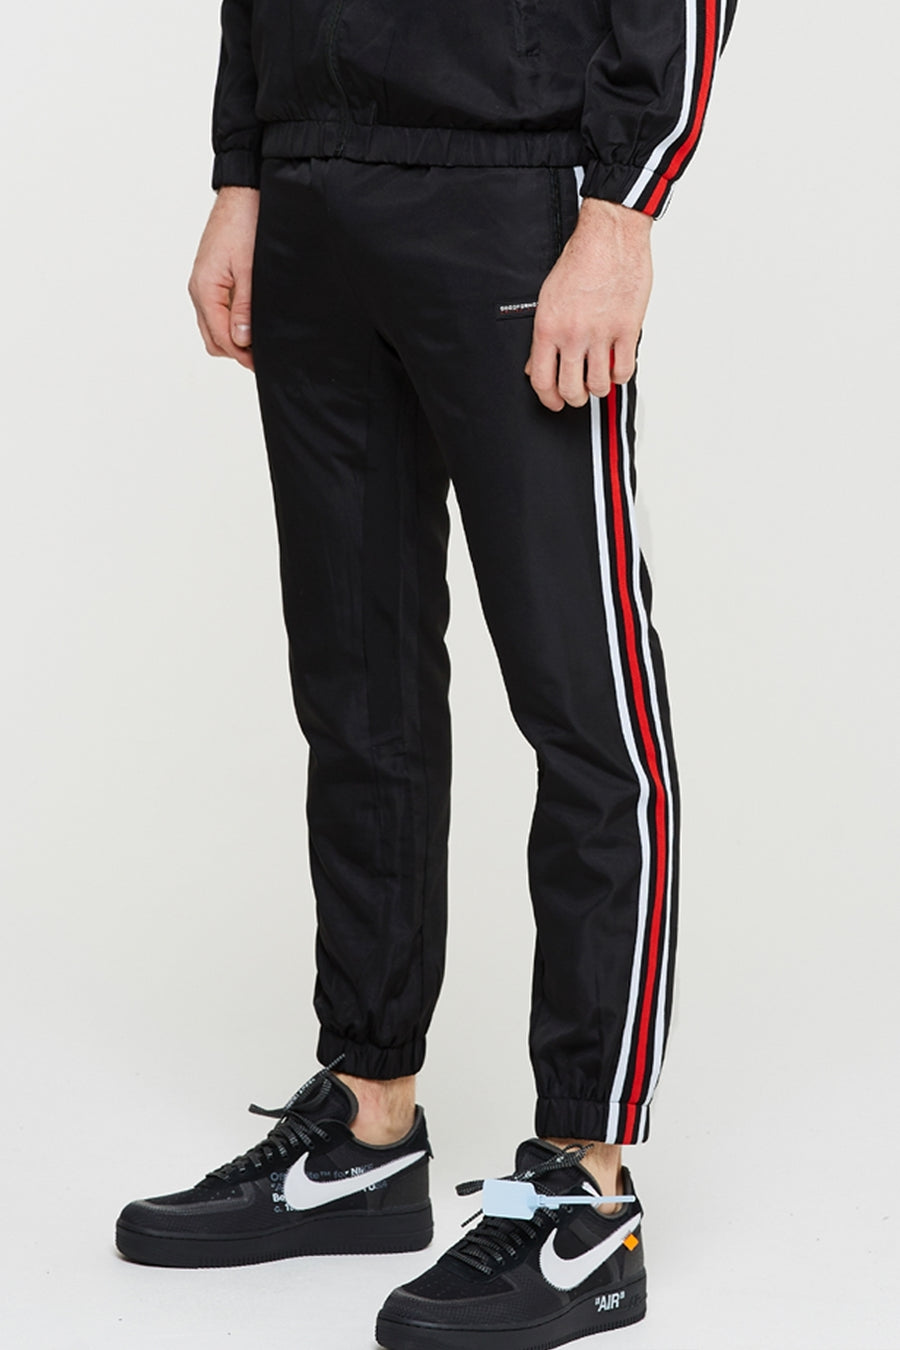 Scope Black Tape Jogger [Final Sale]